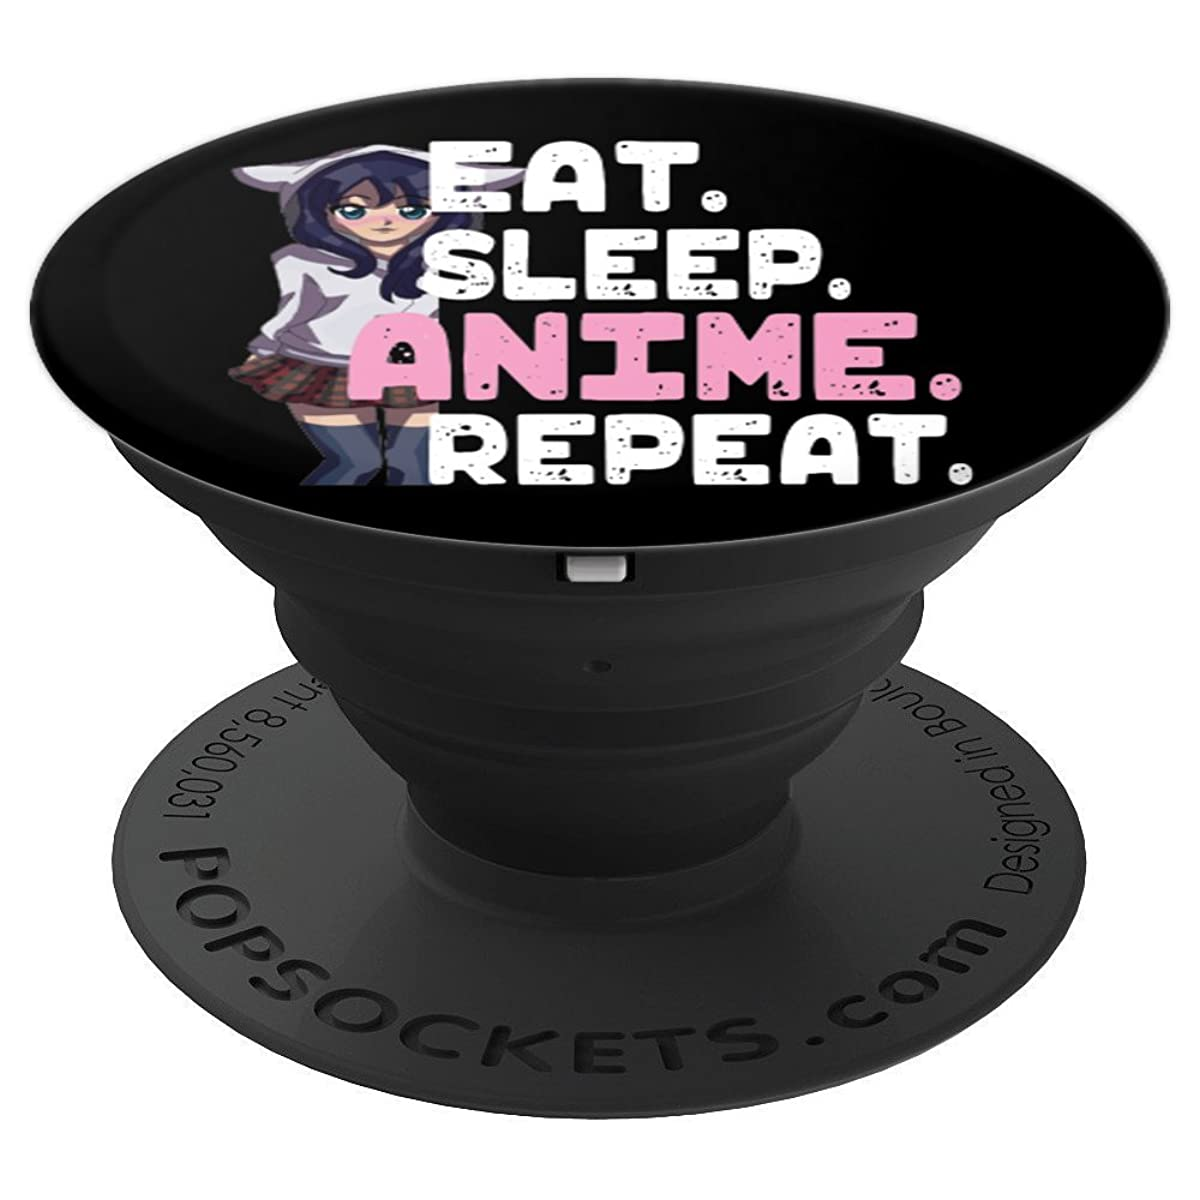 Anime Eat Sleep Repeat - PopSockets Grip and Stand for Phones and Tablets